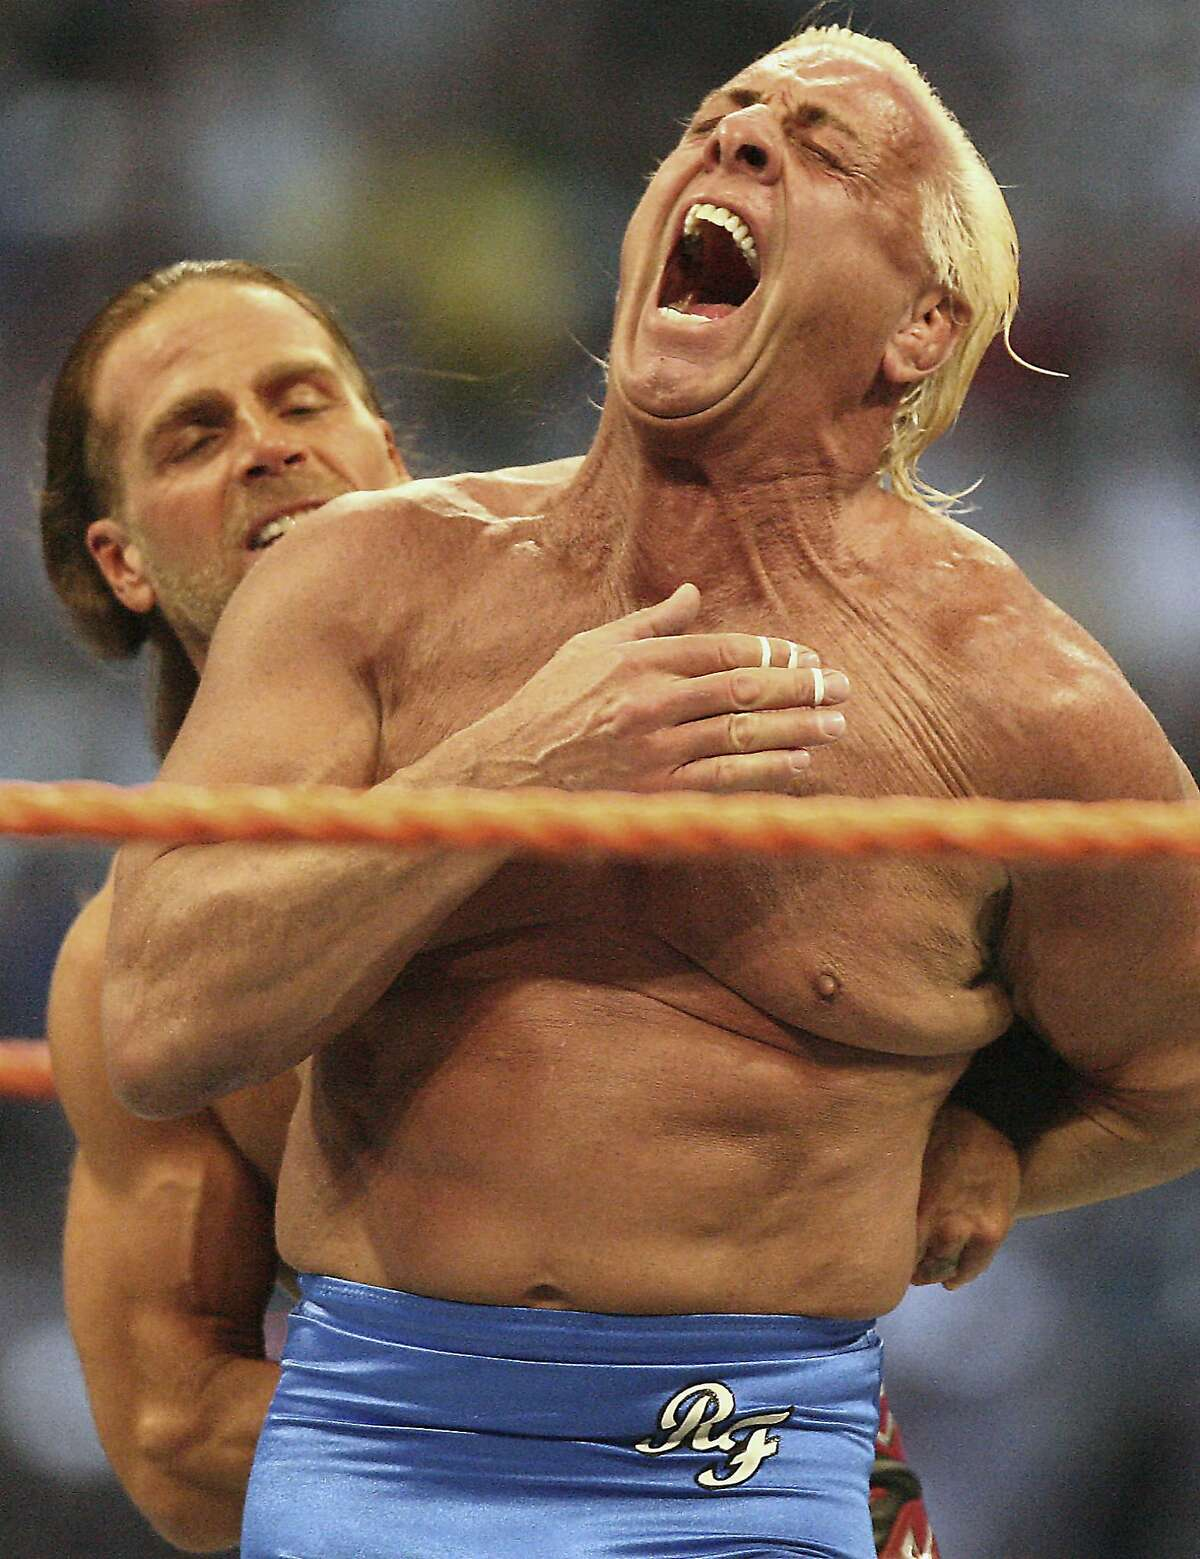 FILE - In this March 30, 2008, file photo, Ric Flair right, reacts as Shawn Michaels puts him in a hold during the Career Threatening Match at WrestleMania XXIV at the Citrus Bowl in Orlando, Fla. Flair, whose